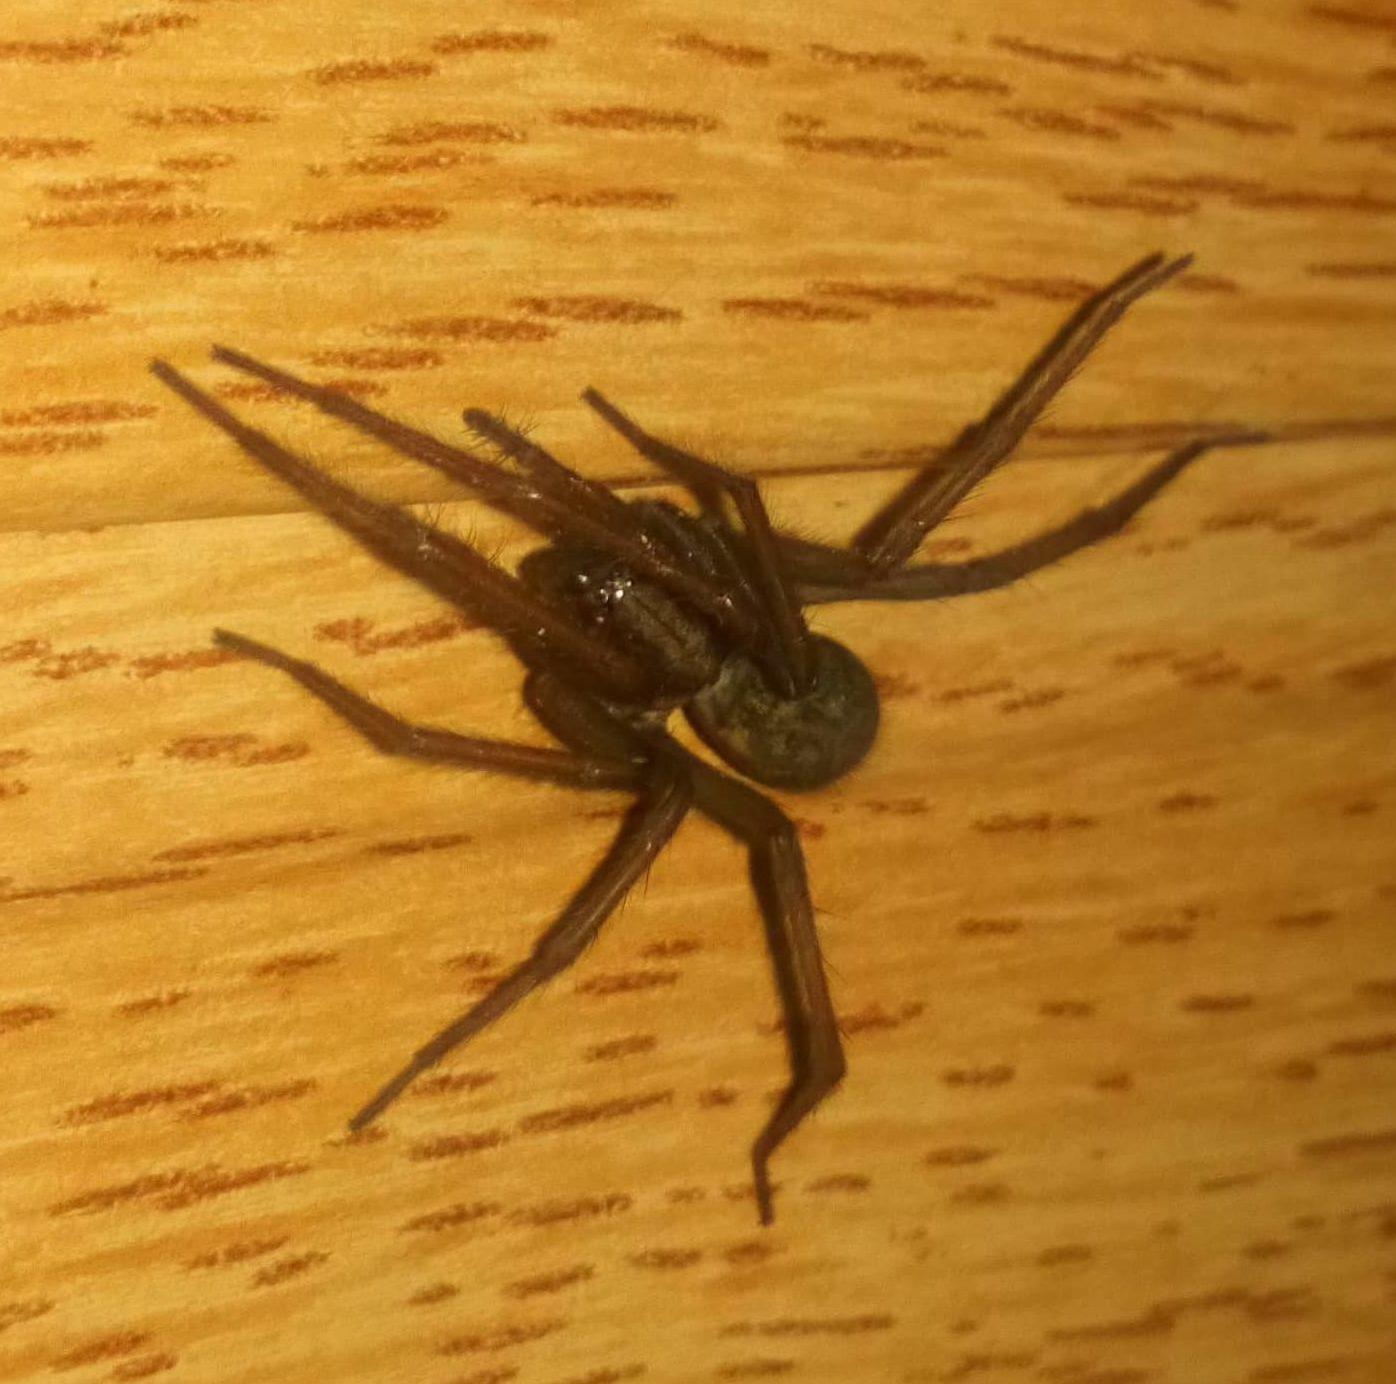 Picture of Eratigena atrica (Giant House Spider) - Dorsal,Eyes